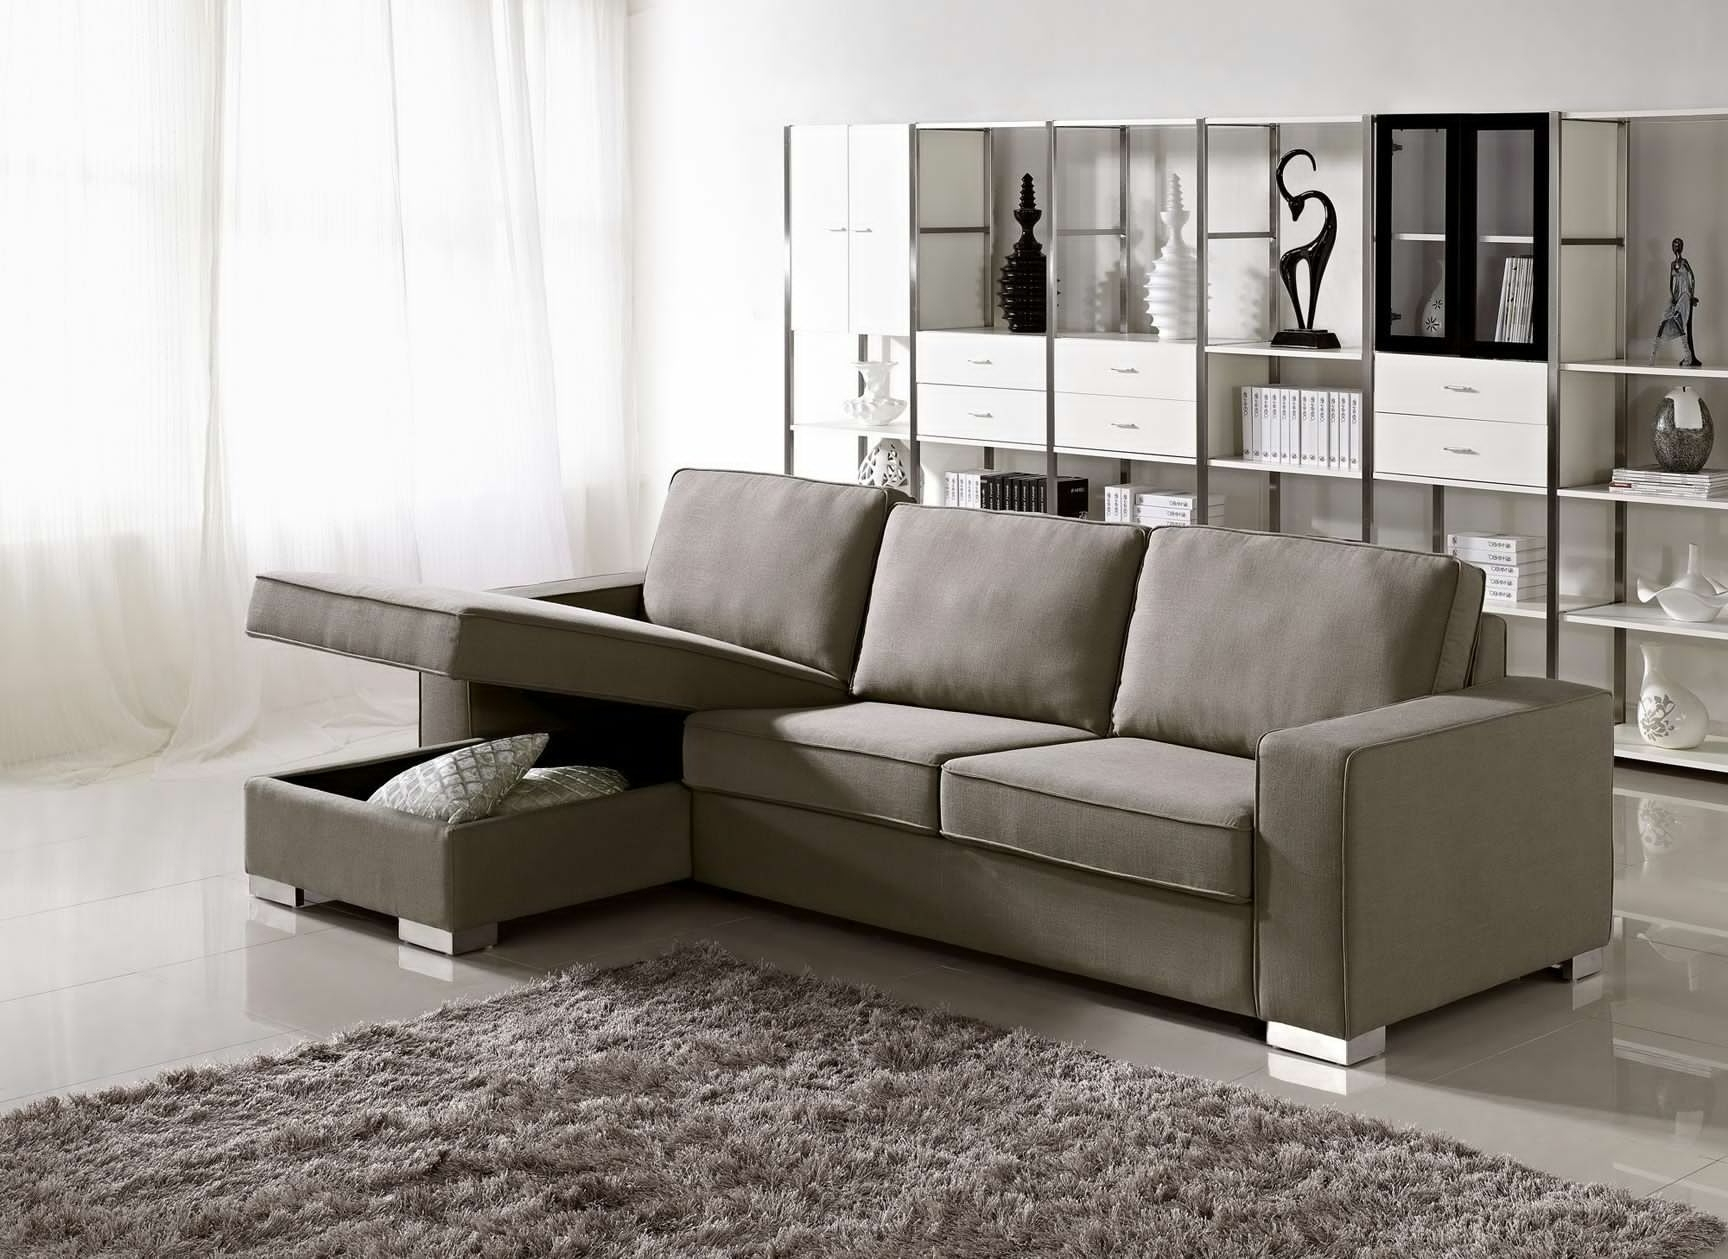 Recent Sectional Sofas For Condos Within Sectional Sofa Design: Apartment Size Sectional Sofa With Chaise (View 15 of 20)